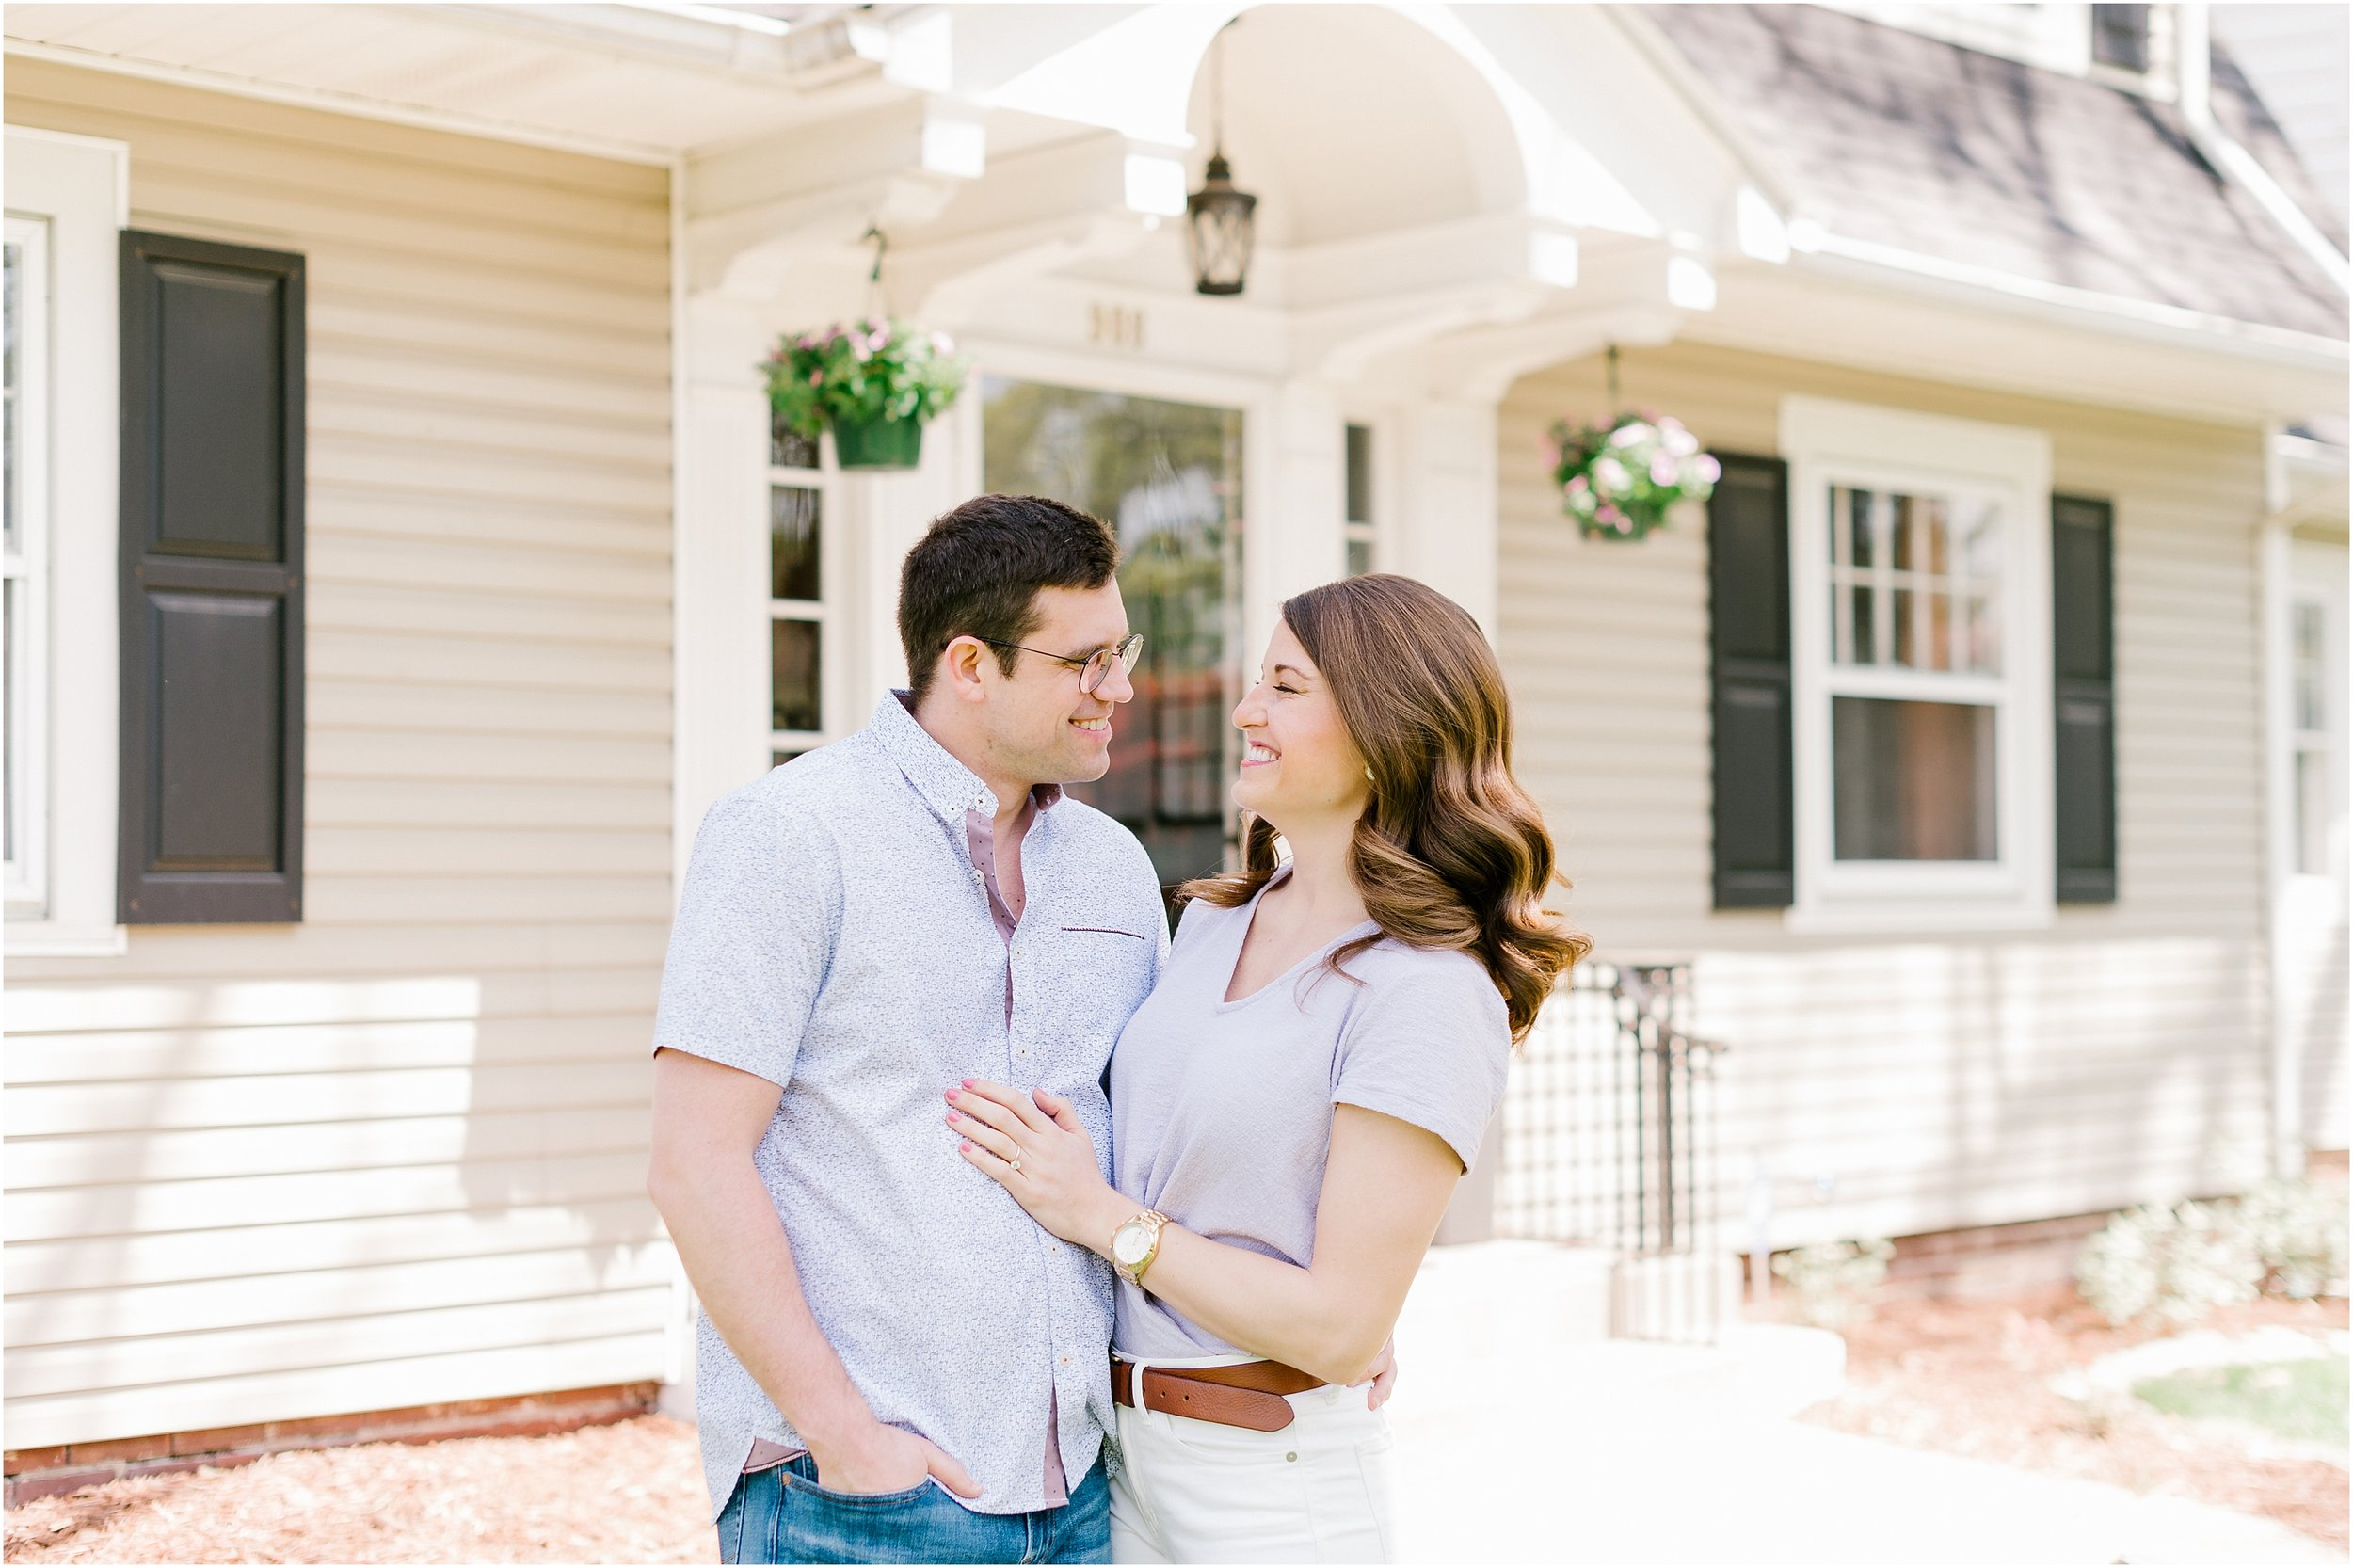 Rebecca Shehorn Photography Indianapolis Wedding Photographer Kathryn and Zach Fort Wayne Engagement Session_0002.jpg